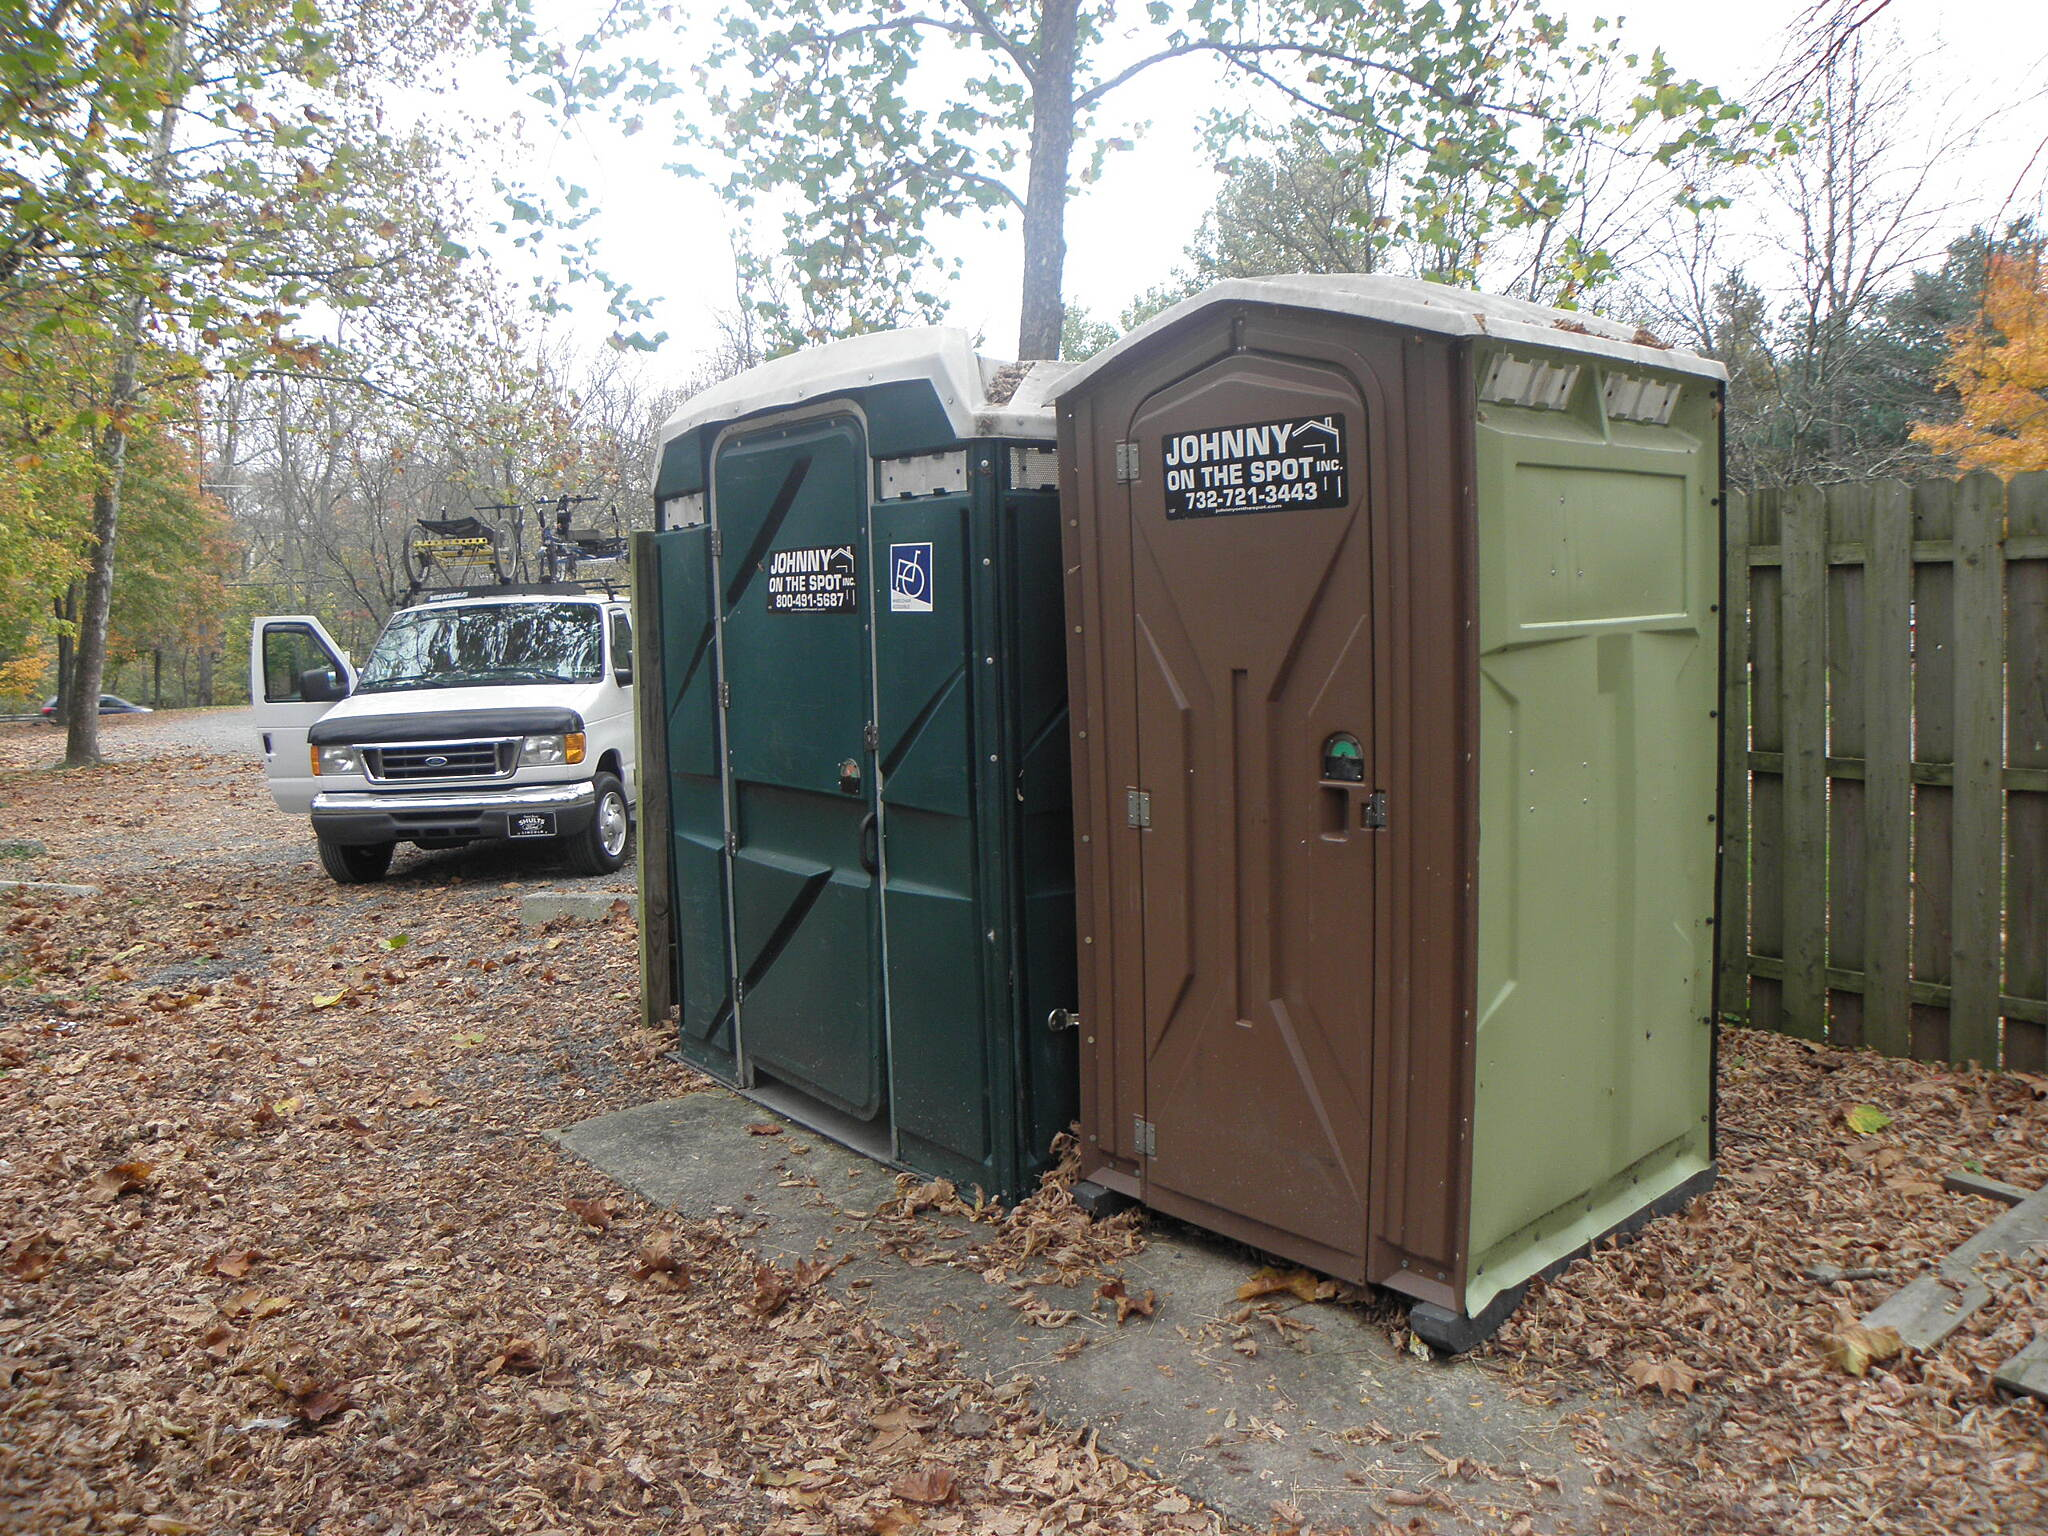 Delaware and Raritan Canal State Park Trail Toilet facilities can be found at most trailheads.